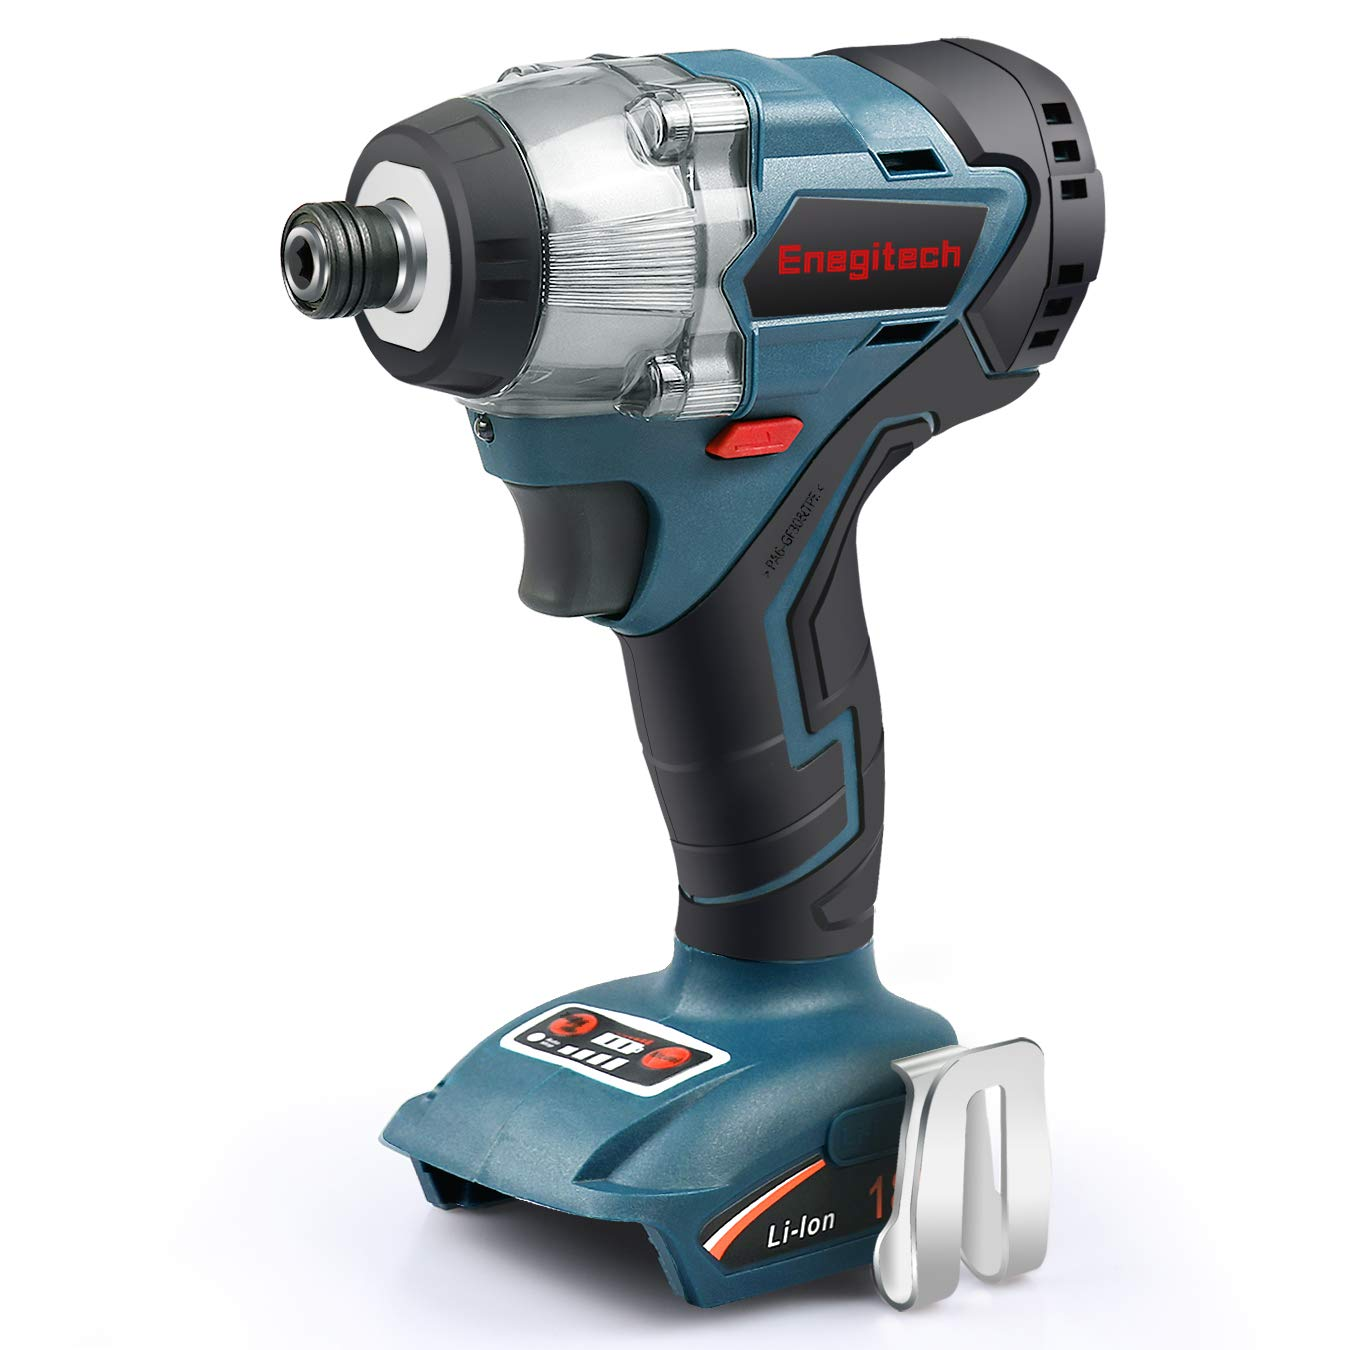 Enegitech 18V Cordless Impact Driver Brushless Motor 4-Speed 2700 RPM Electric Power Tool for Furniture, Work with Enegitech ETB1830B or Makita 18V LXT Battery Tool Only